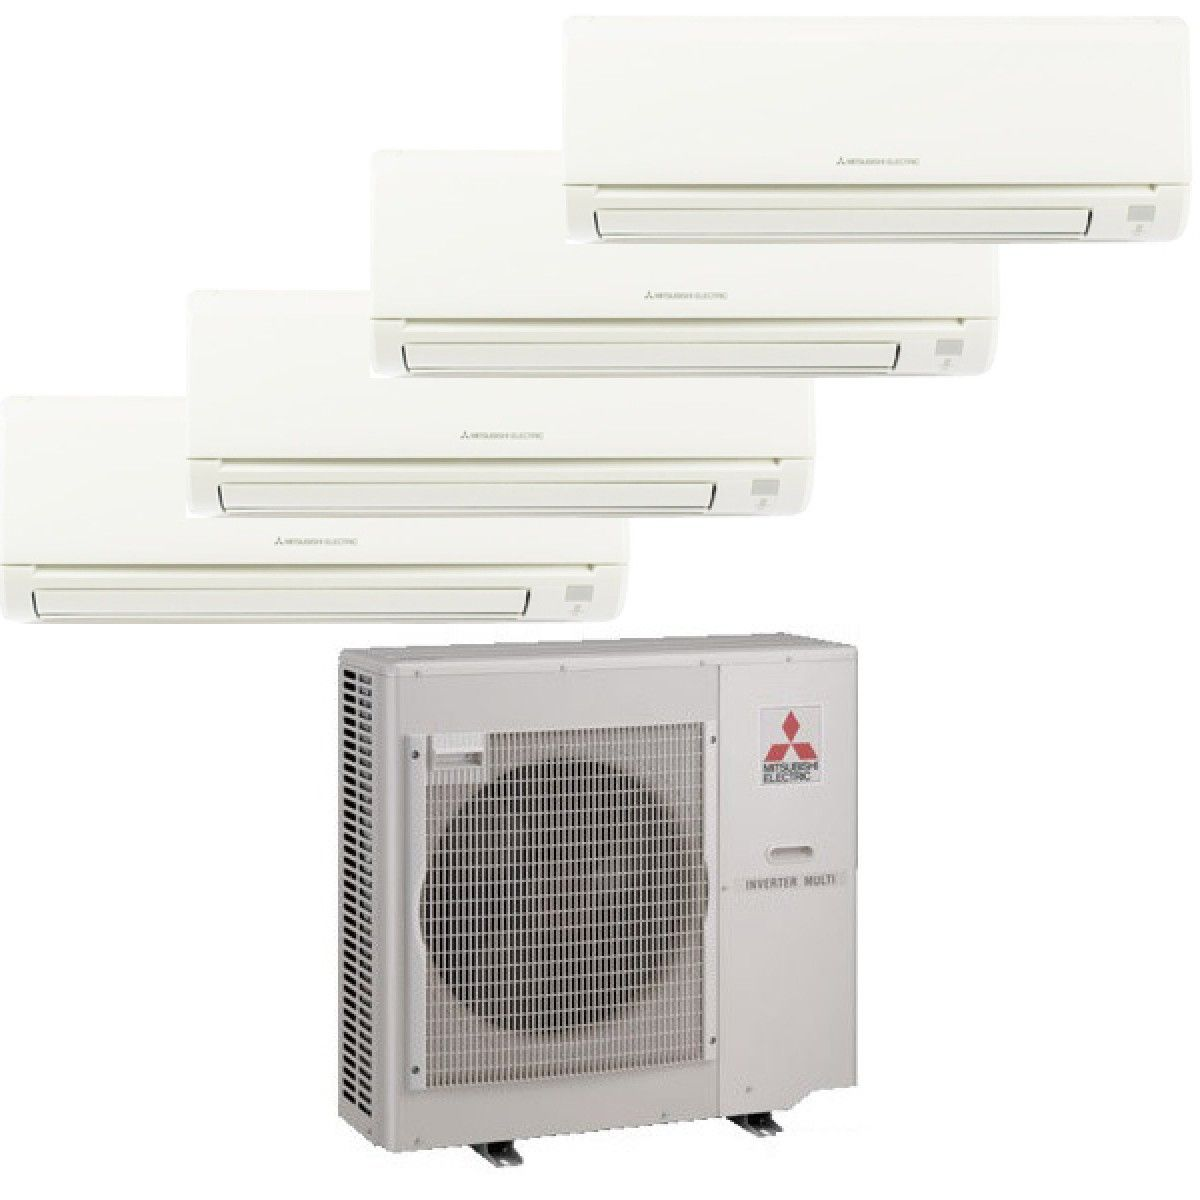 Mitsubishi Mr Slim 4 Zone Heat Pump With 4 9k Btu Indoor